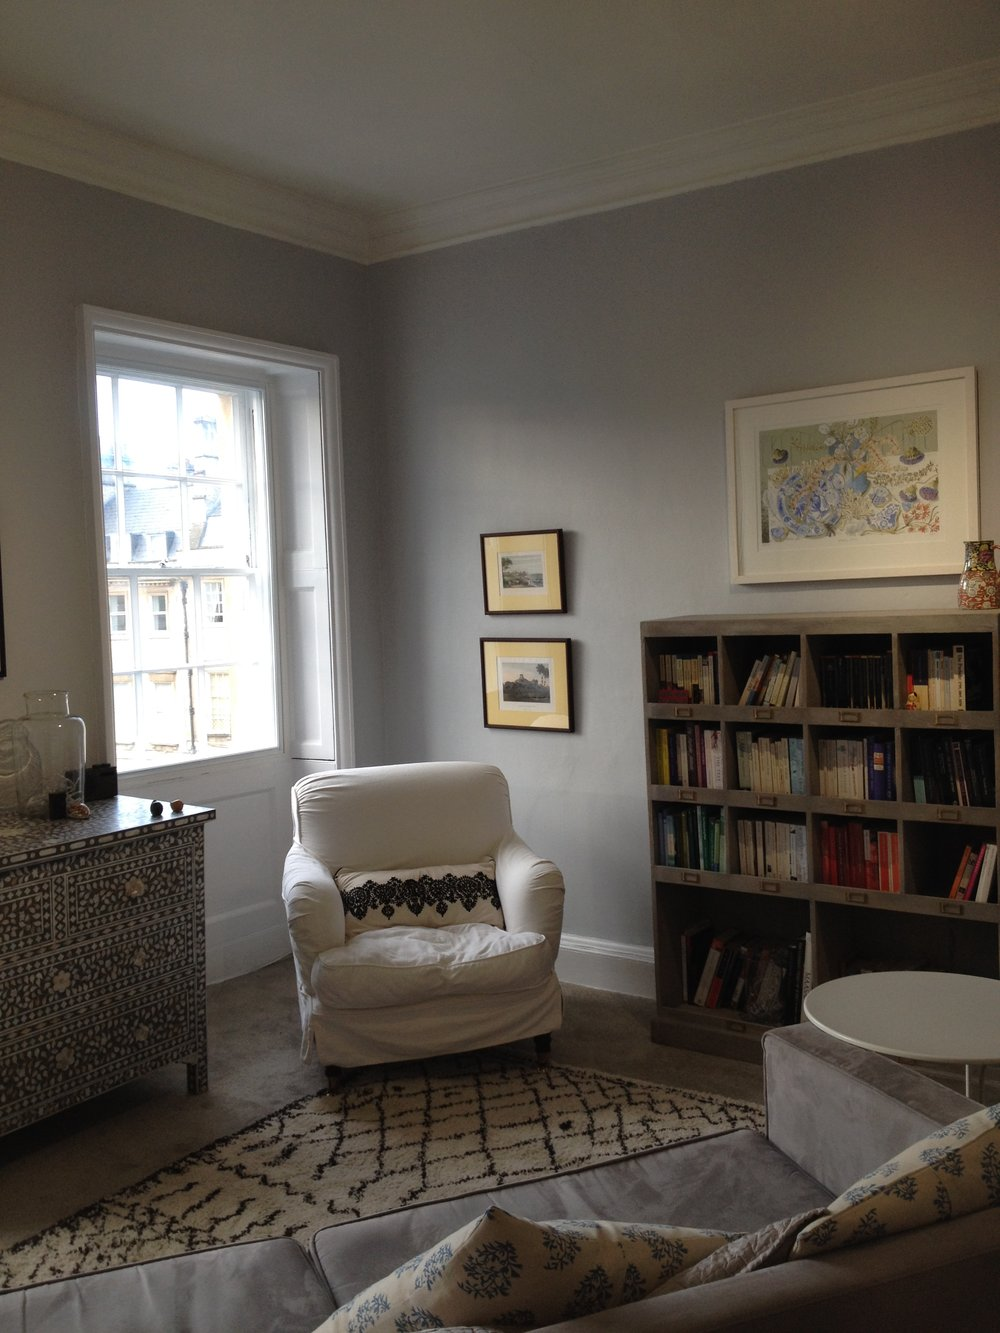 psychotherapy practice room